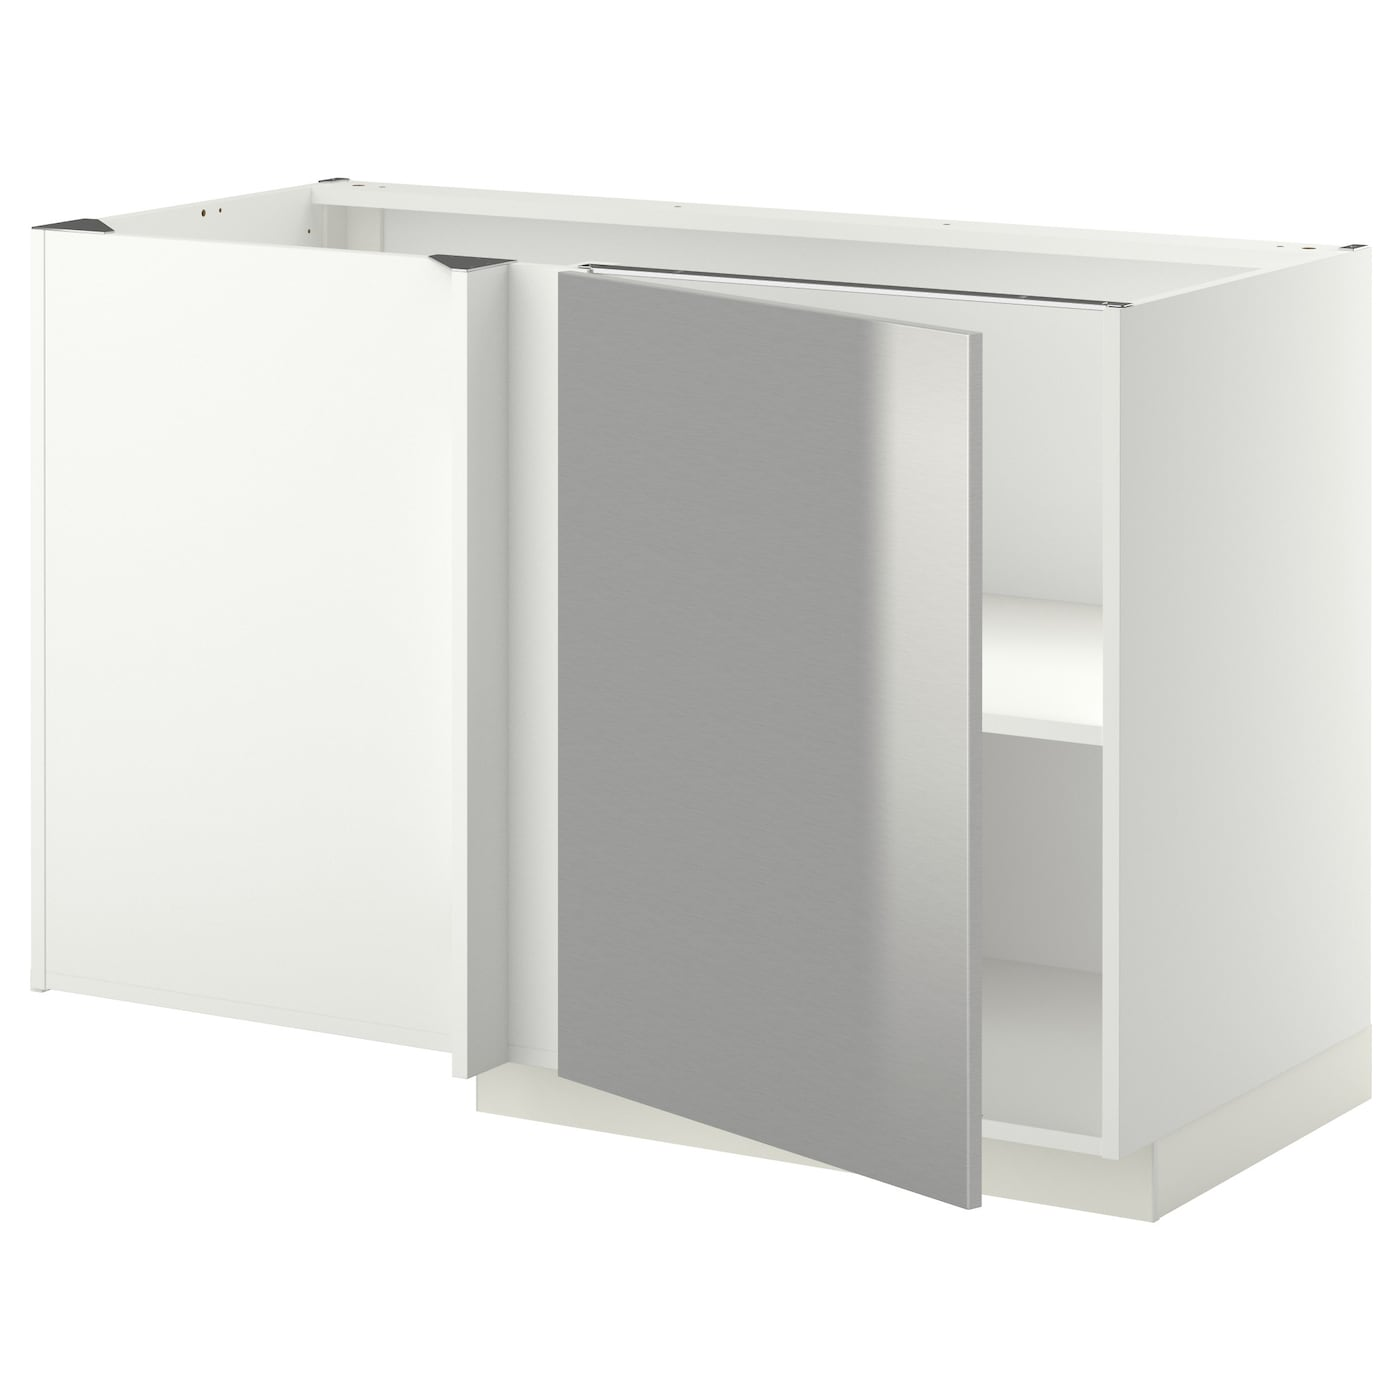 Metod corner base cabinet with shelf white grevsta for Stainless steel kitchen base cabinets